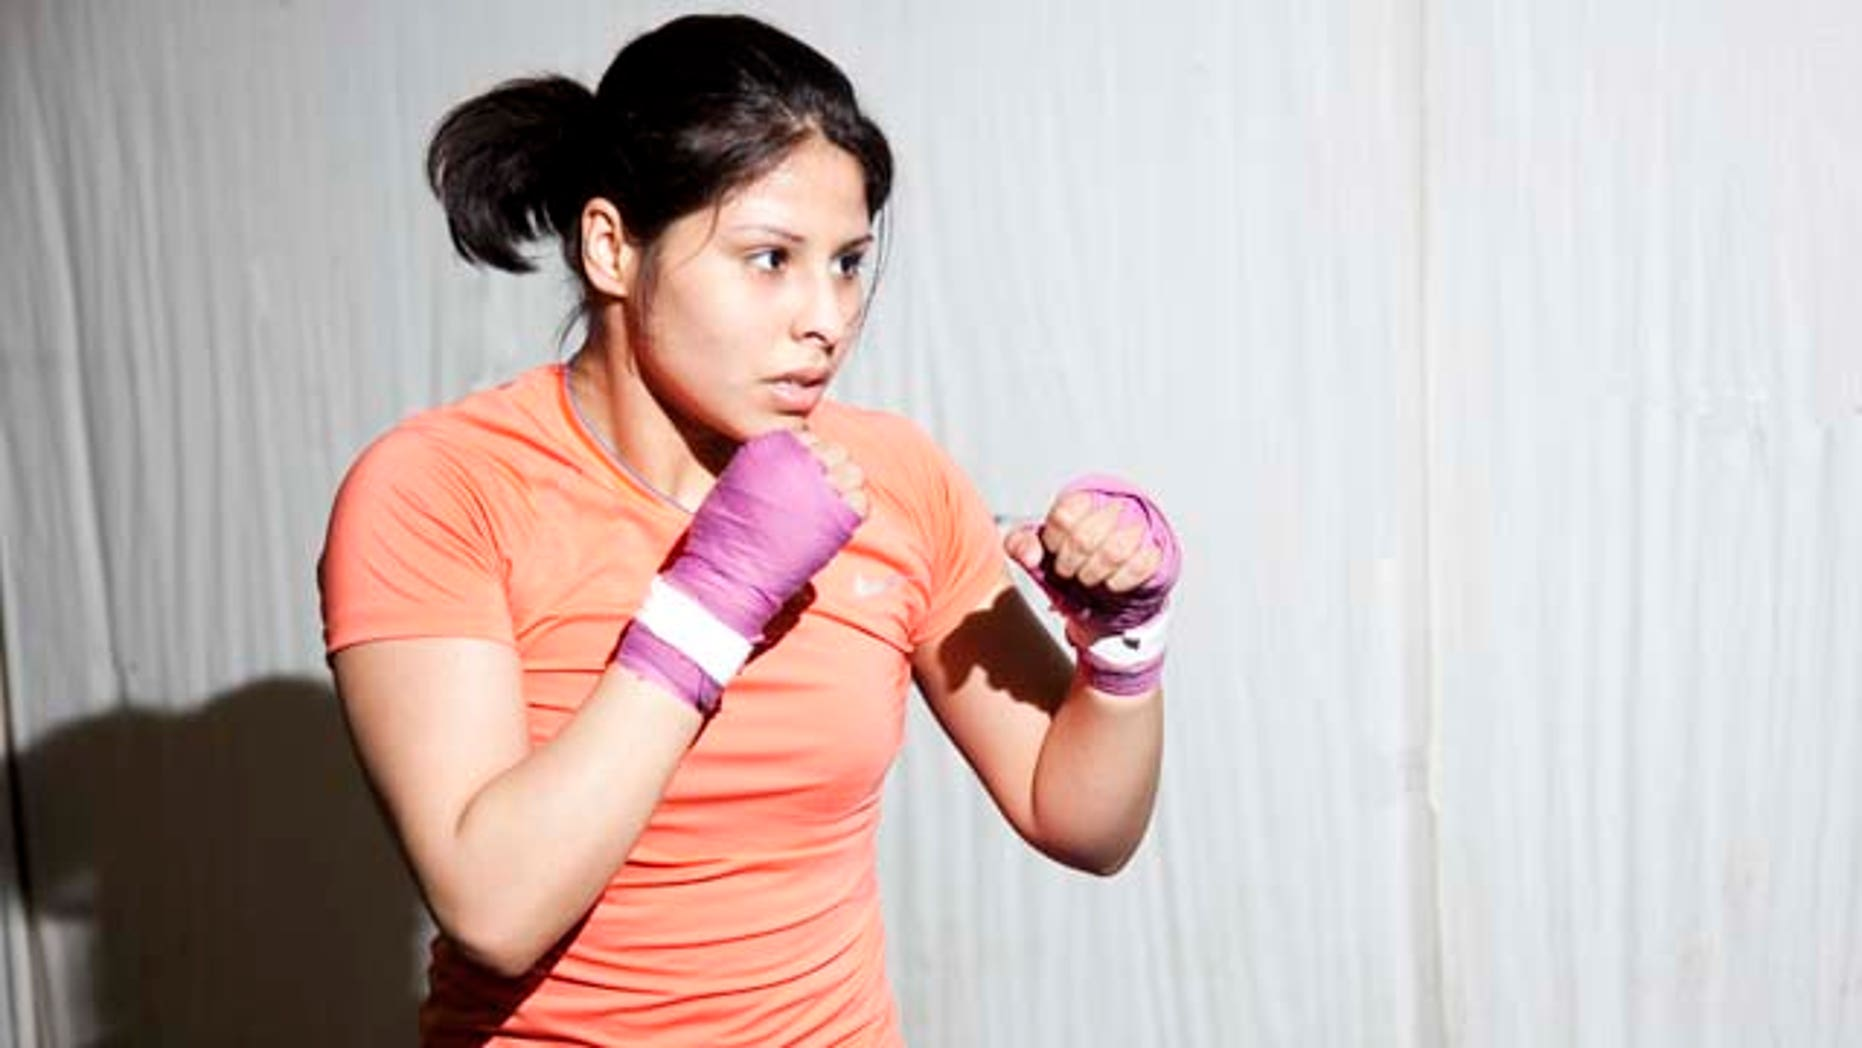 Marlen Esparza, a Houston-based boxing, is fighting to make history at the 2012 Olympics.